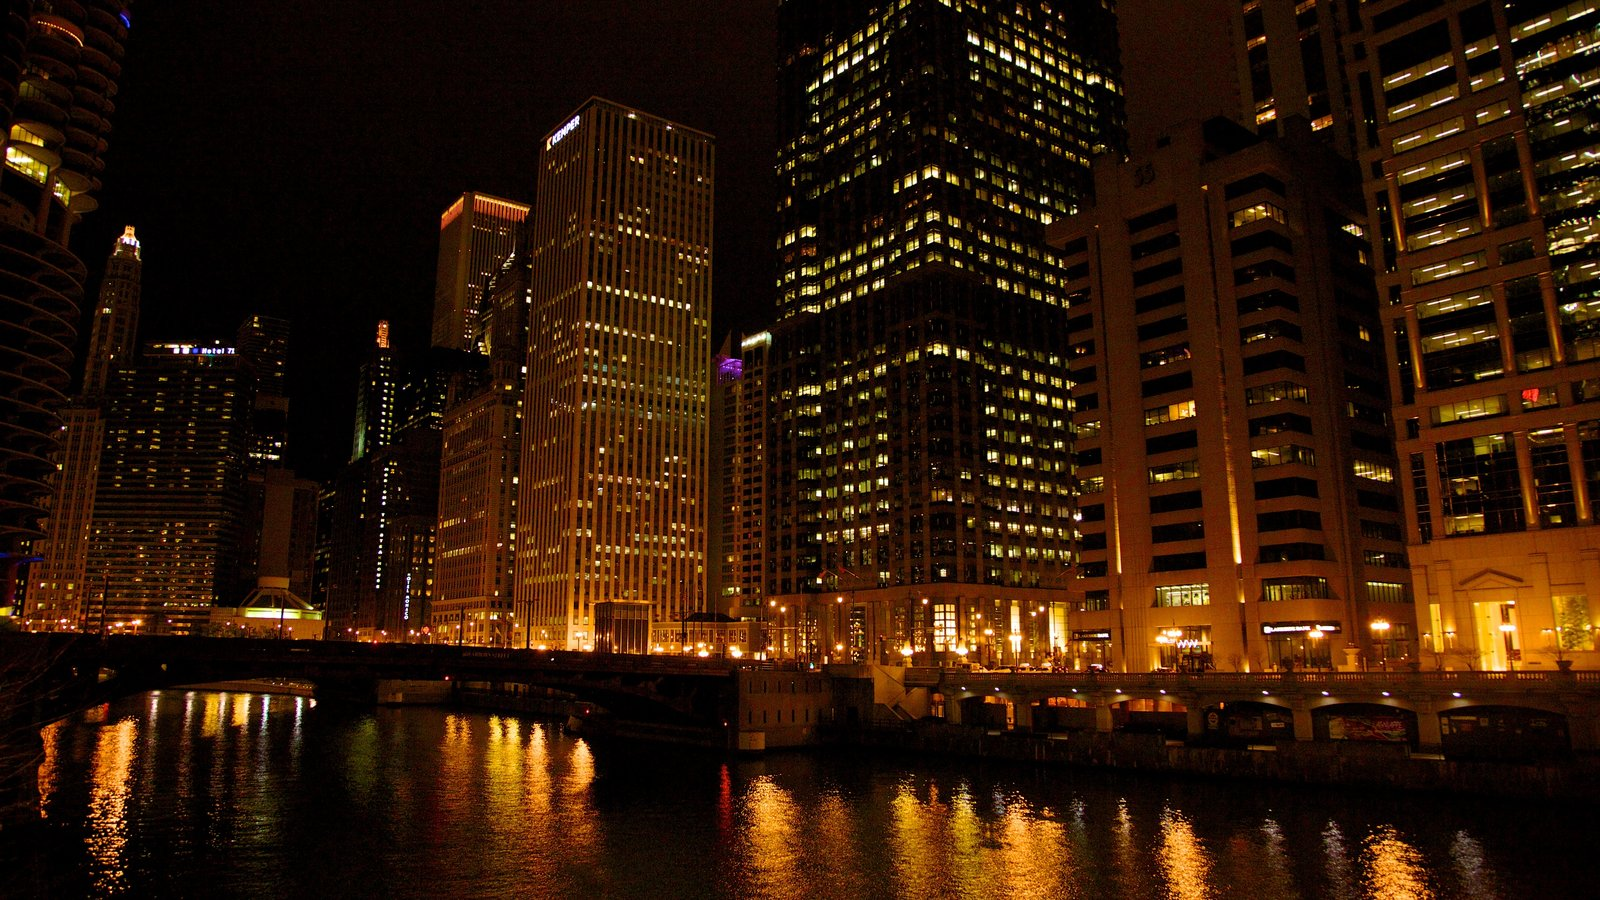 Chicago showing skyline, night scenes and a city